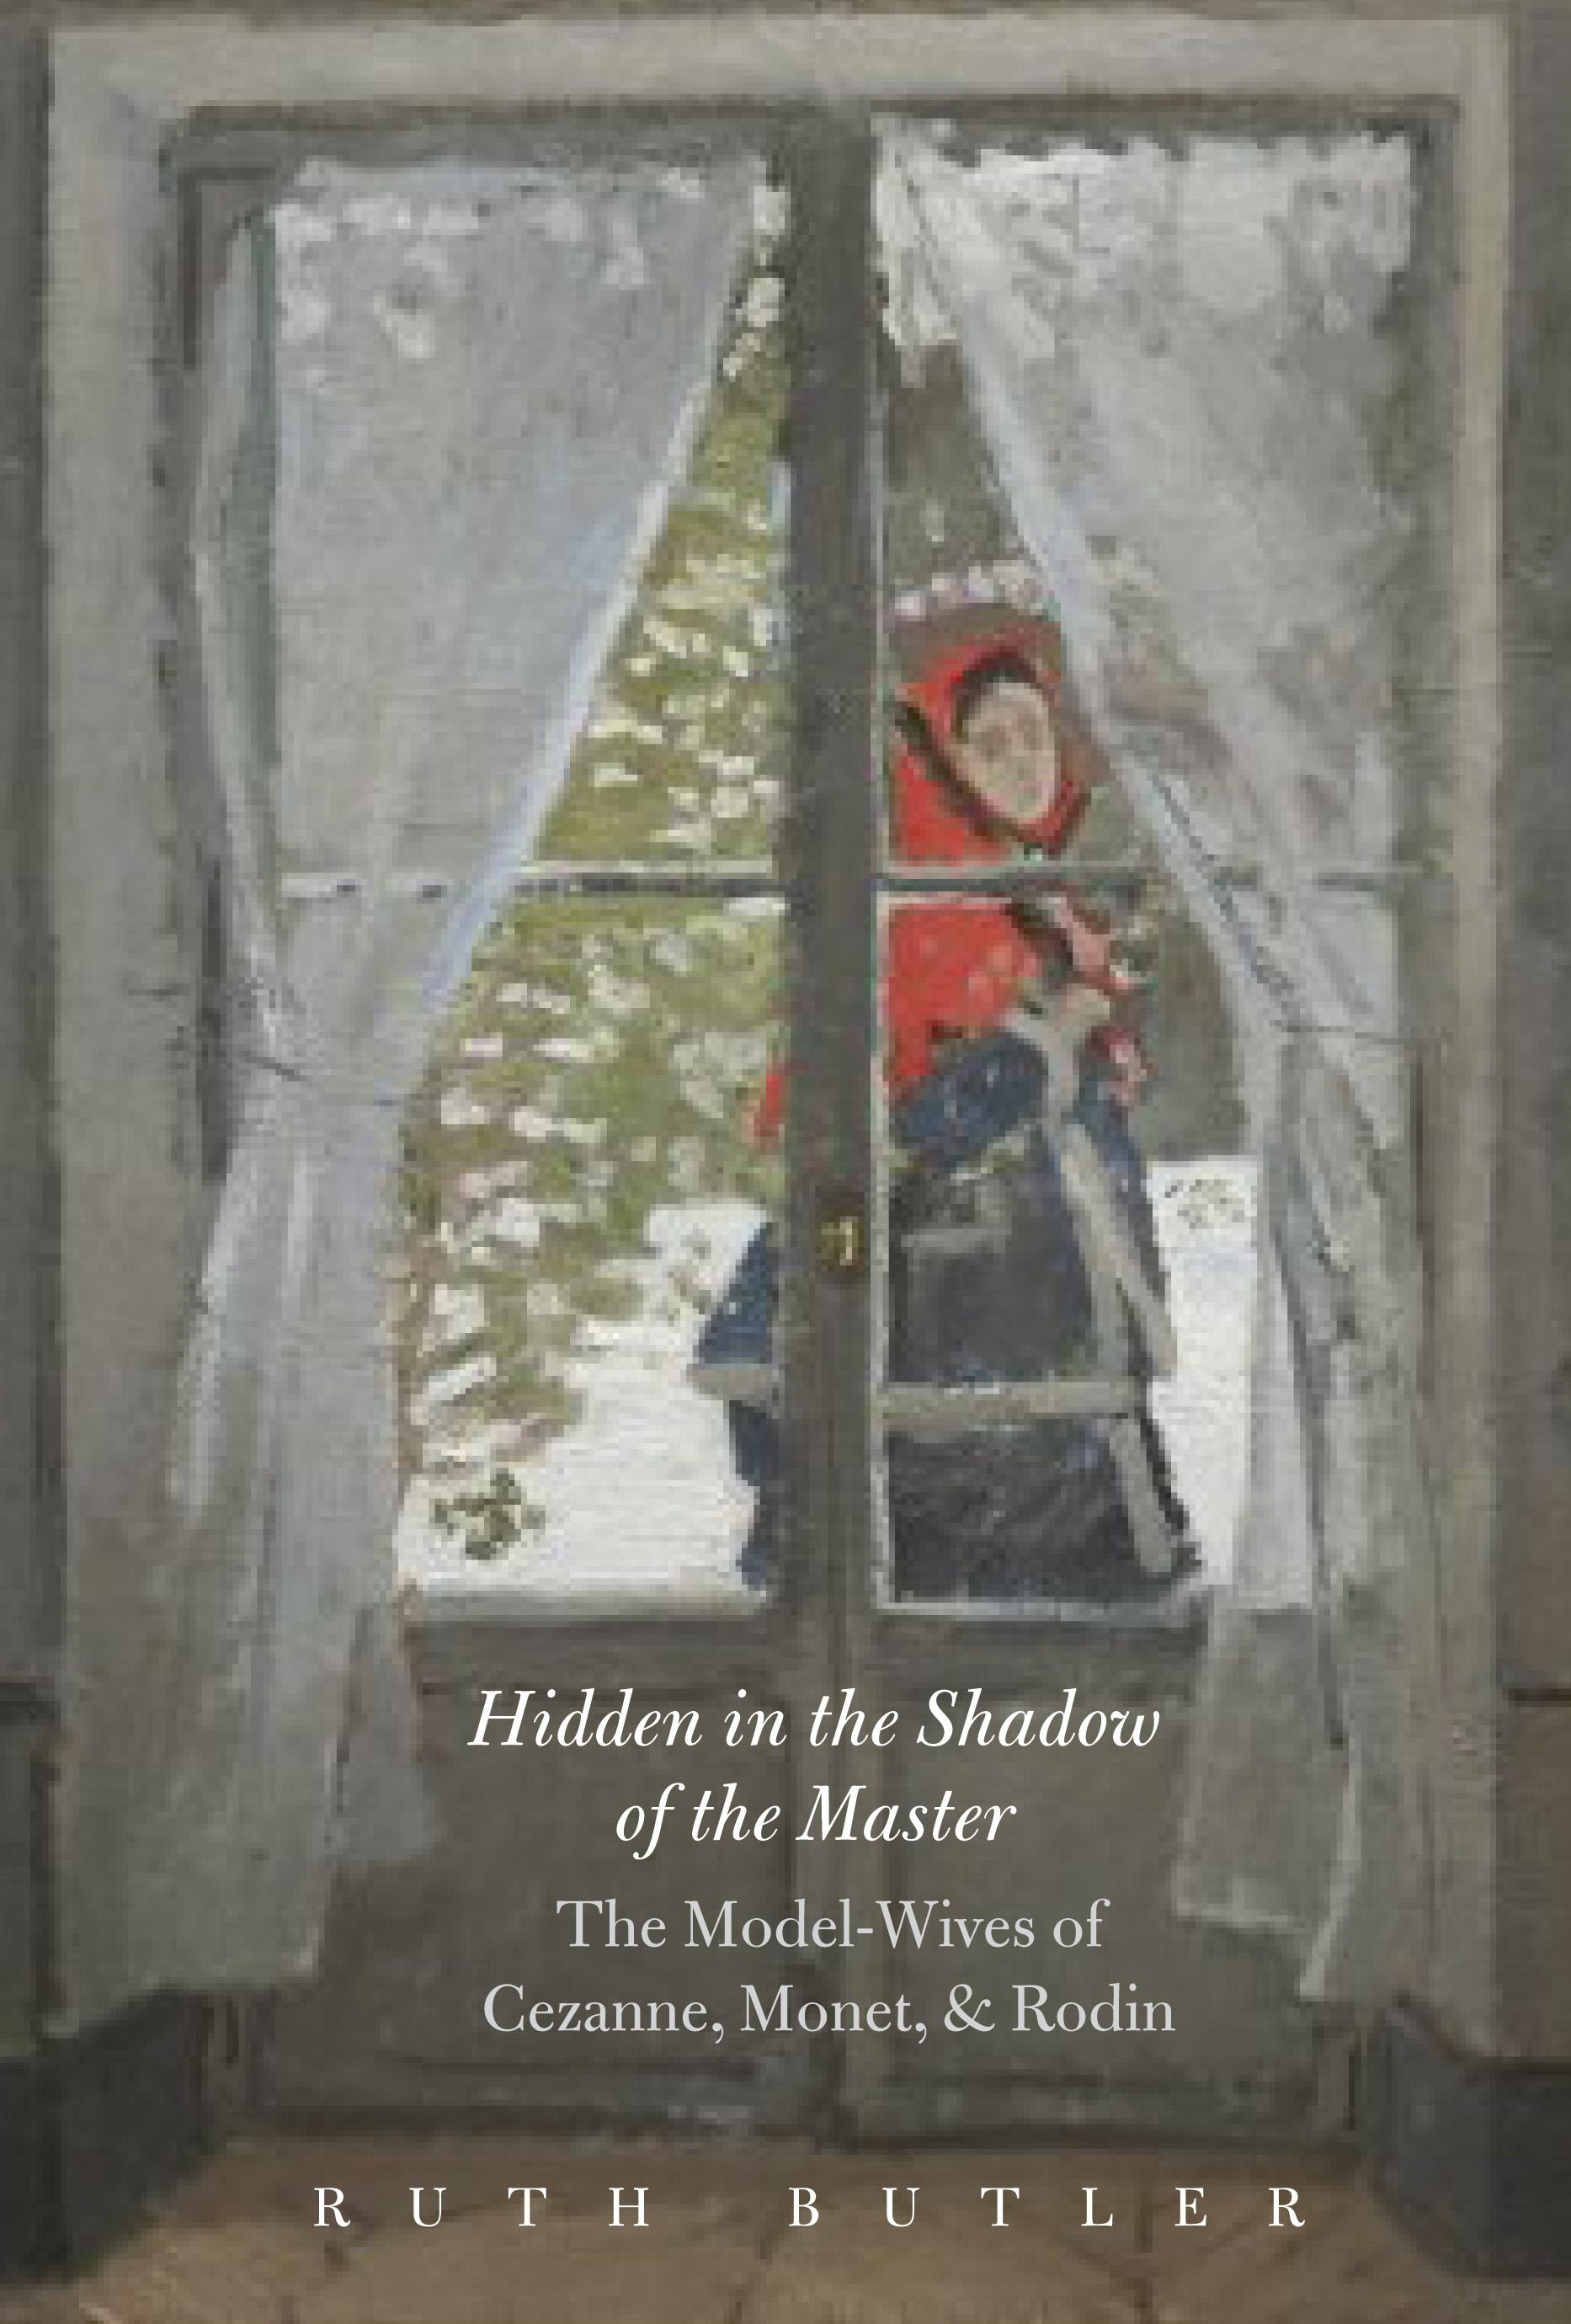 Ruth Butler - Hidden in the Shadow of the Master